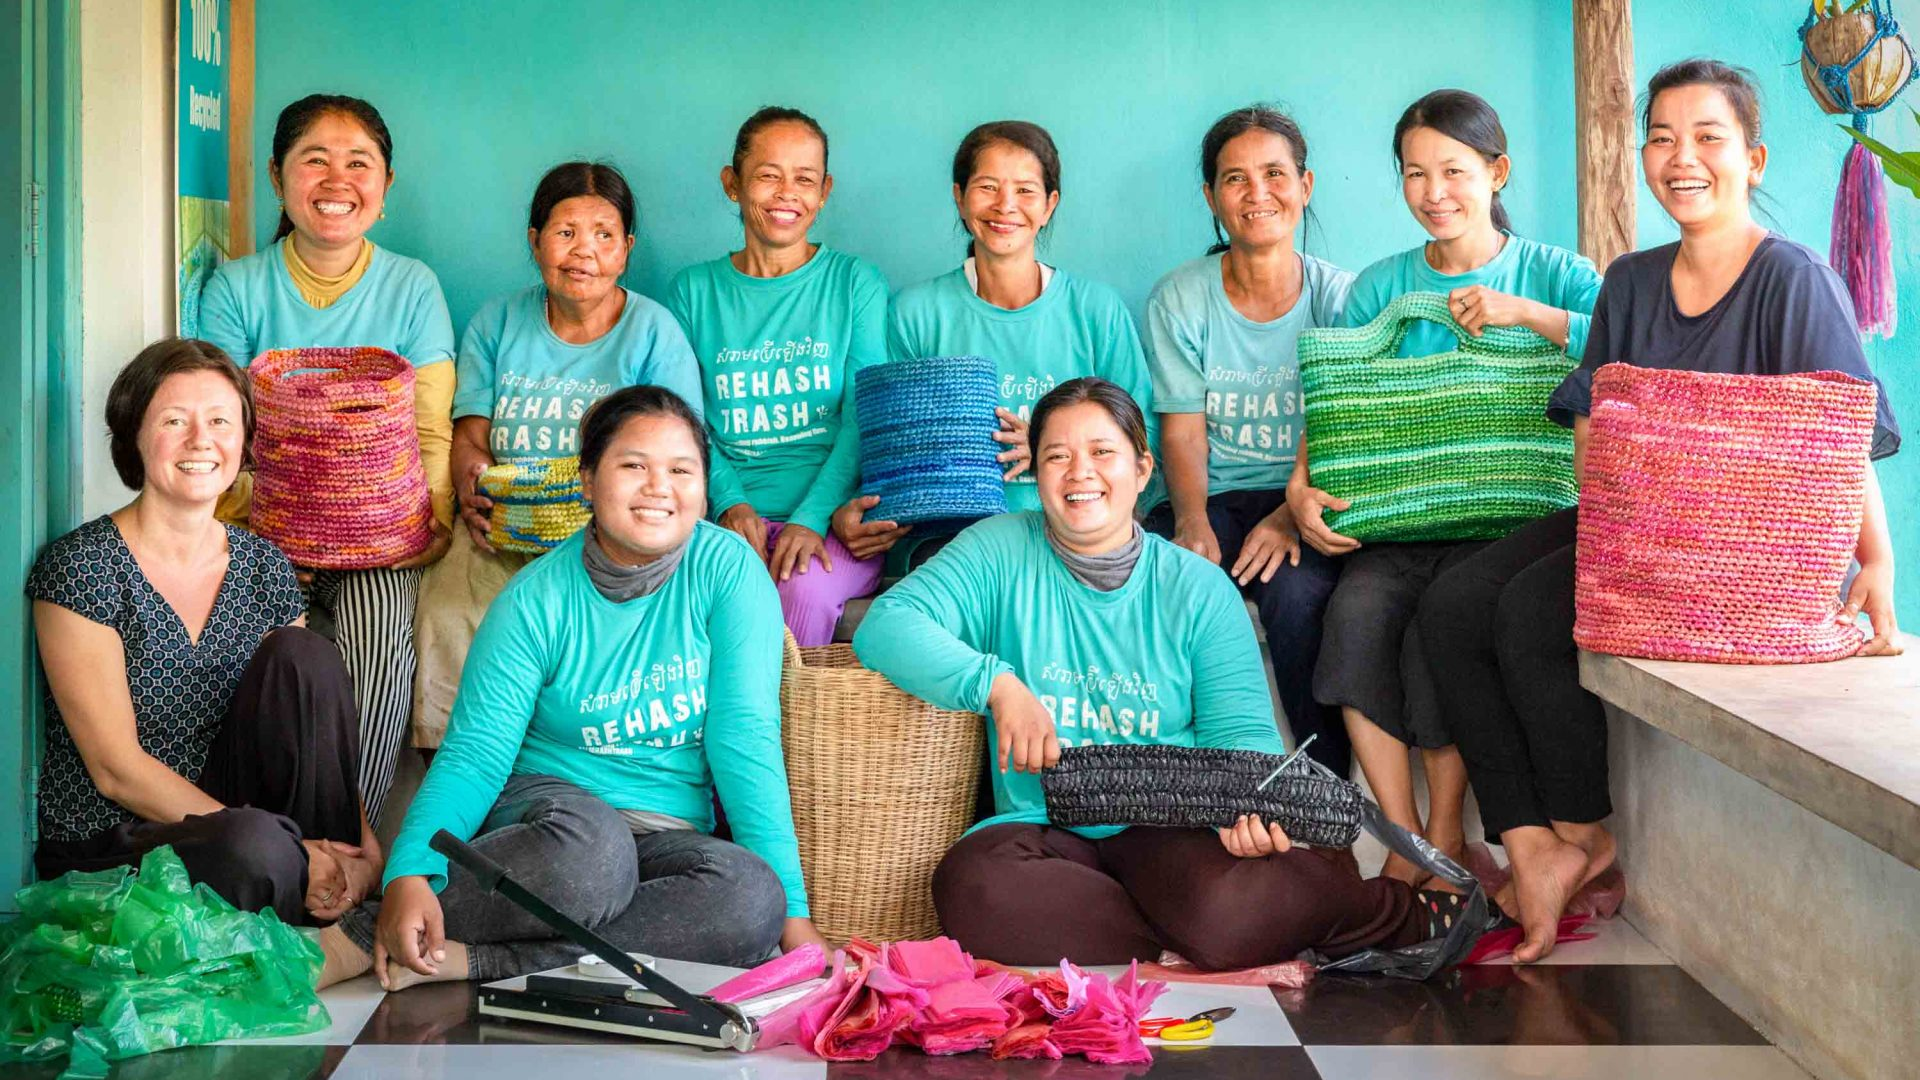 Women who work at Rehash Trash in Cambodia pose for a photo along with some of their creations, made using plastic bags found on the streets.